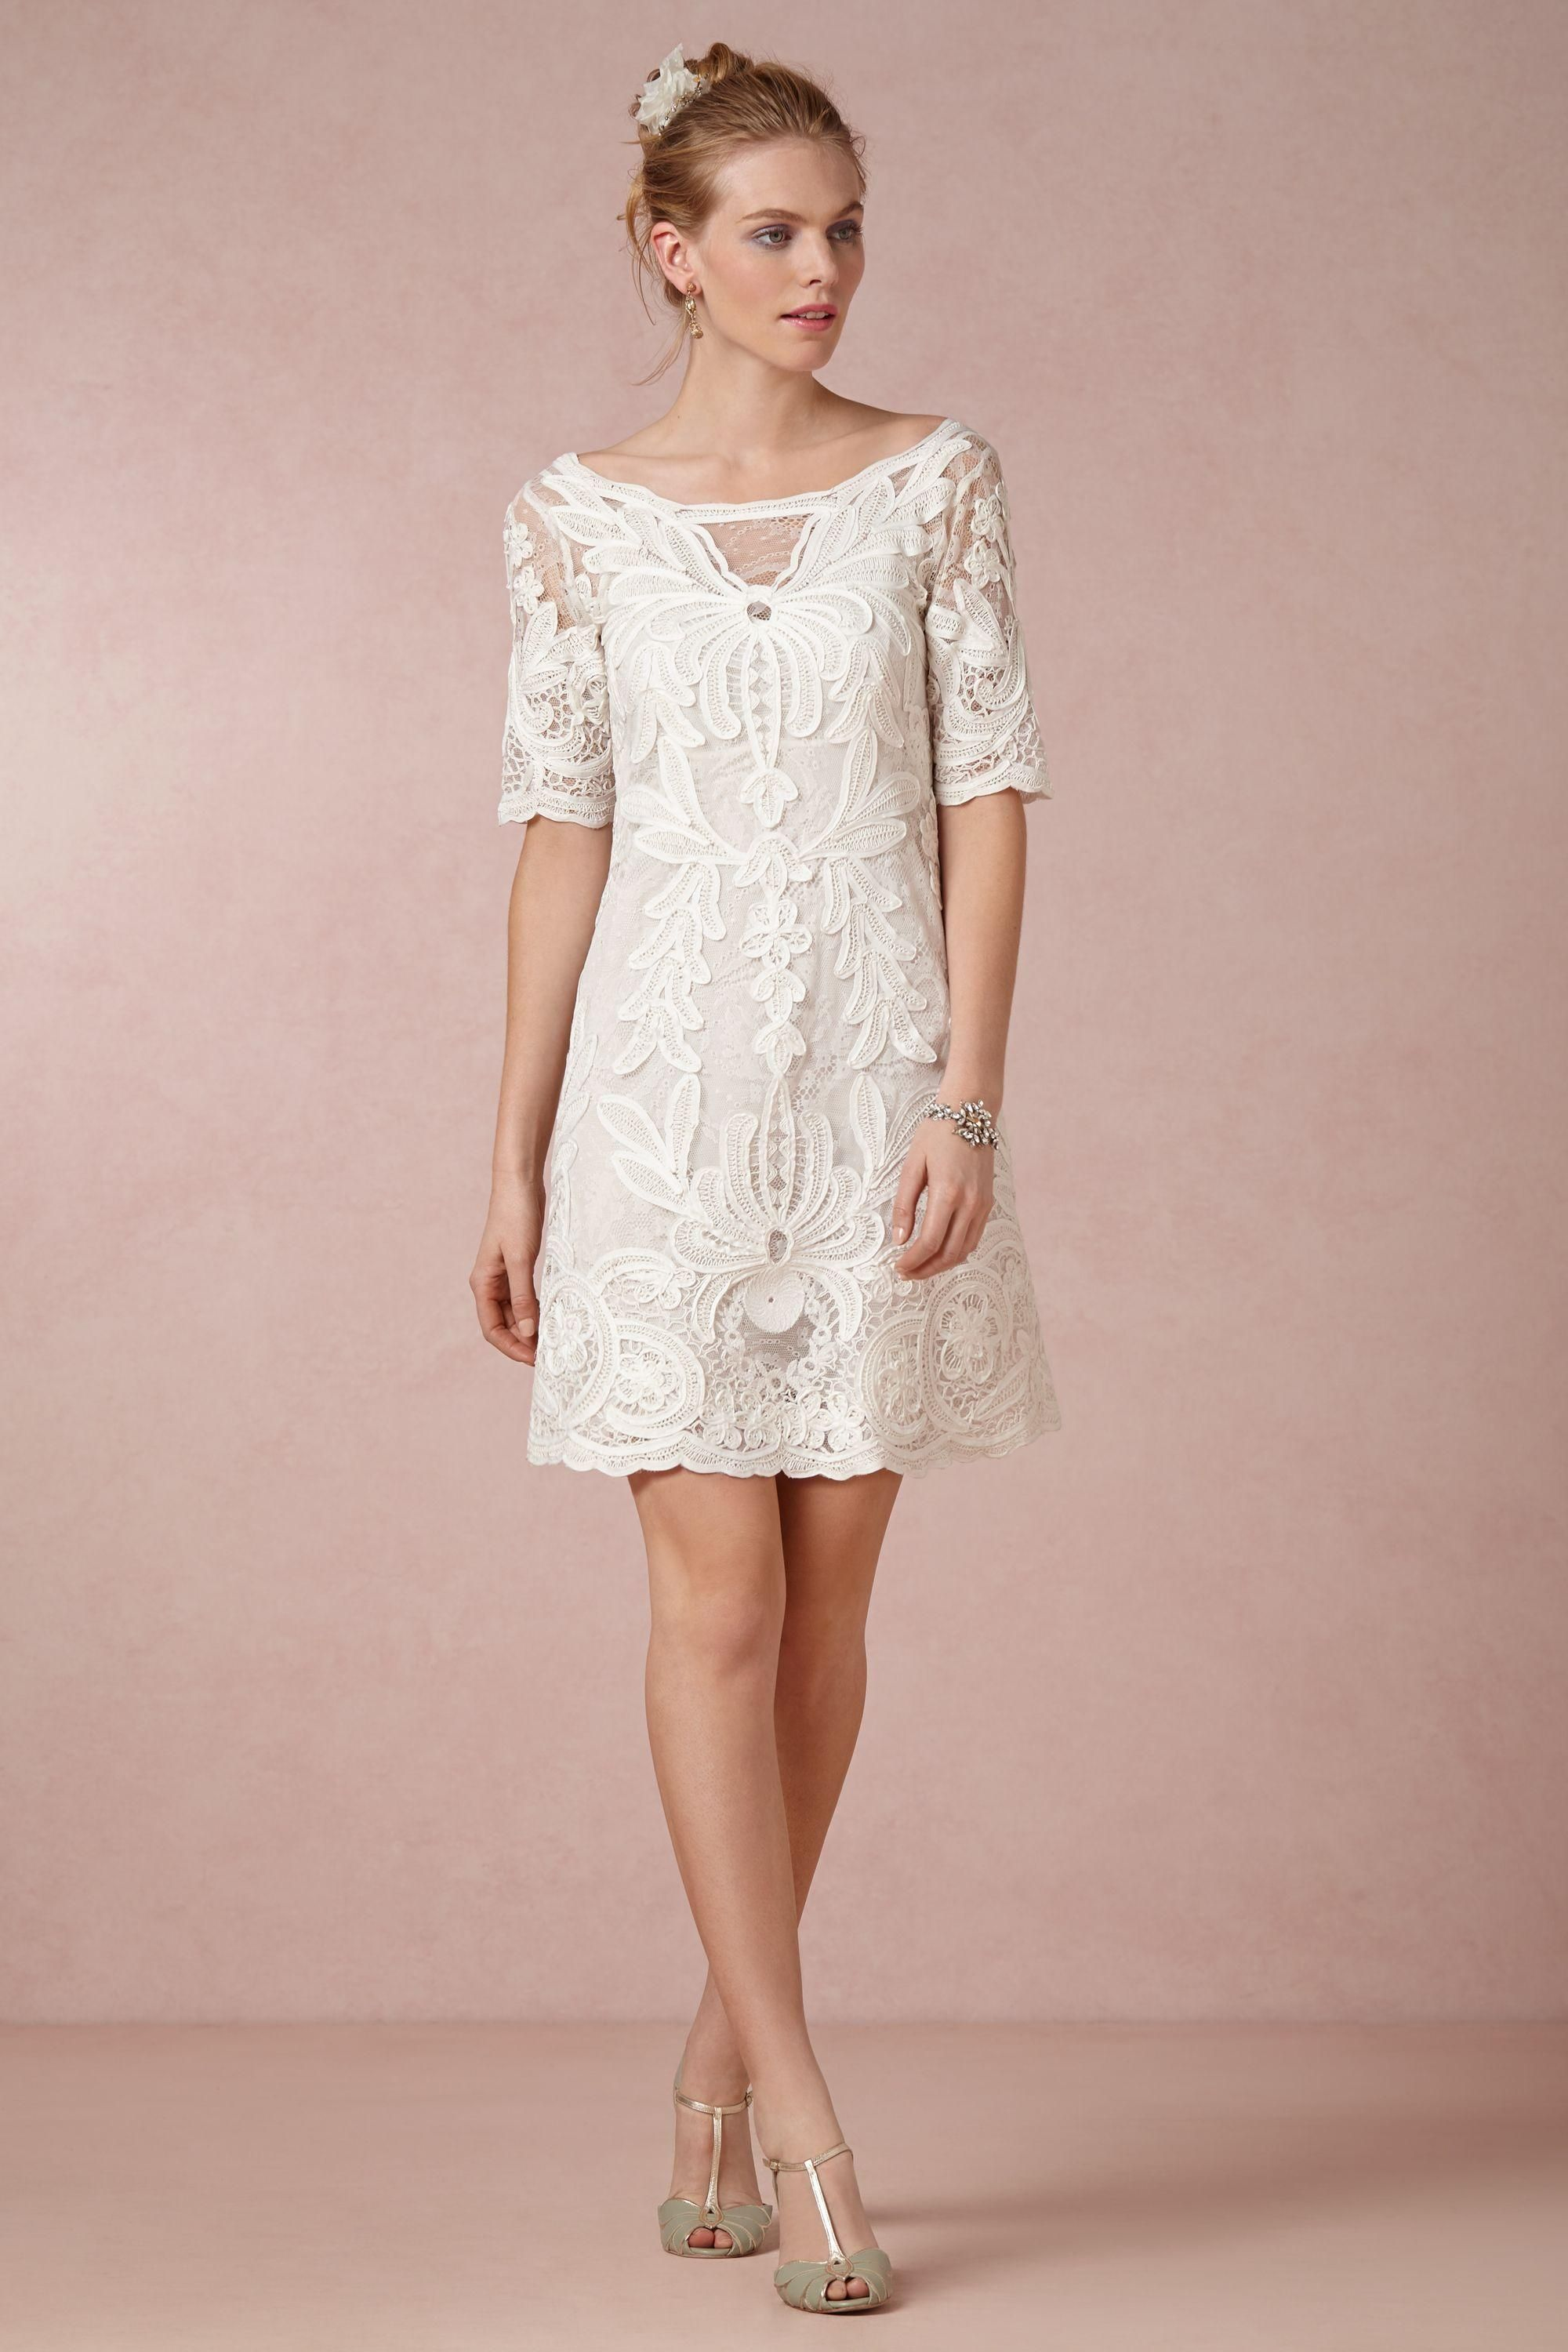 Vienna Dress - BHLDN | Dresses & skirts | Pinterest | Zapatos ...